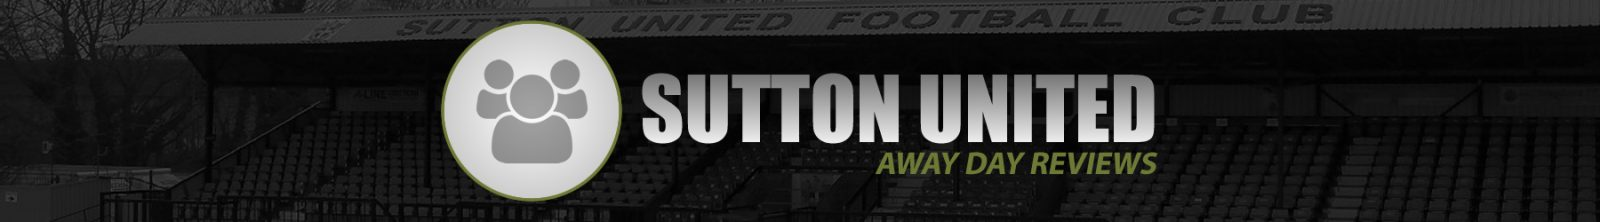 Review Sutton United